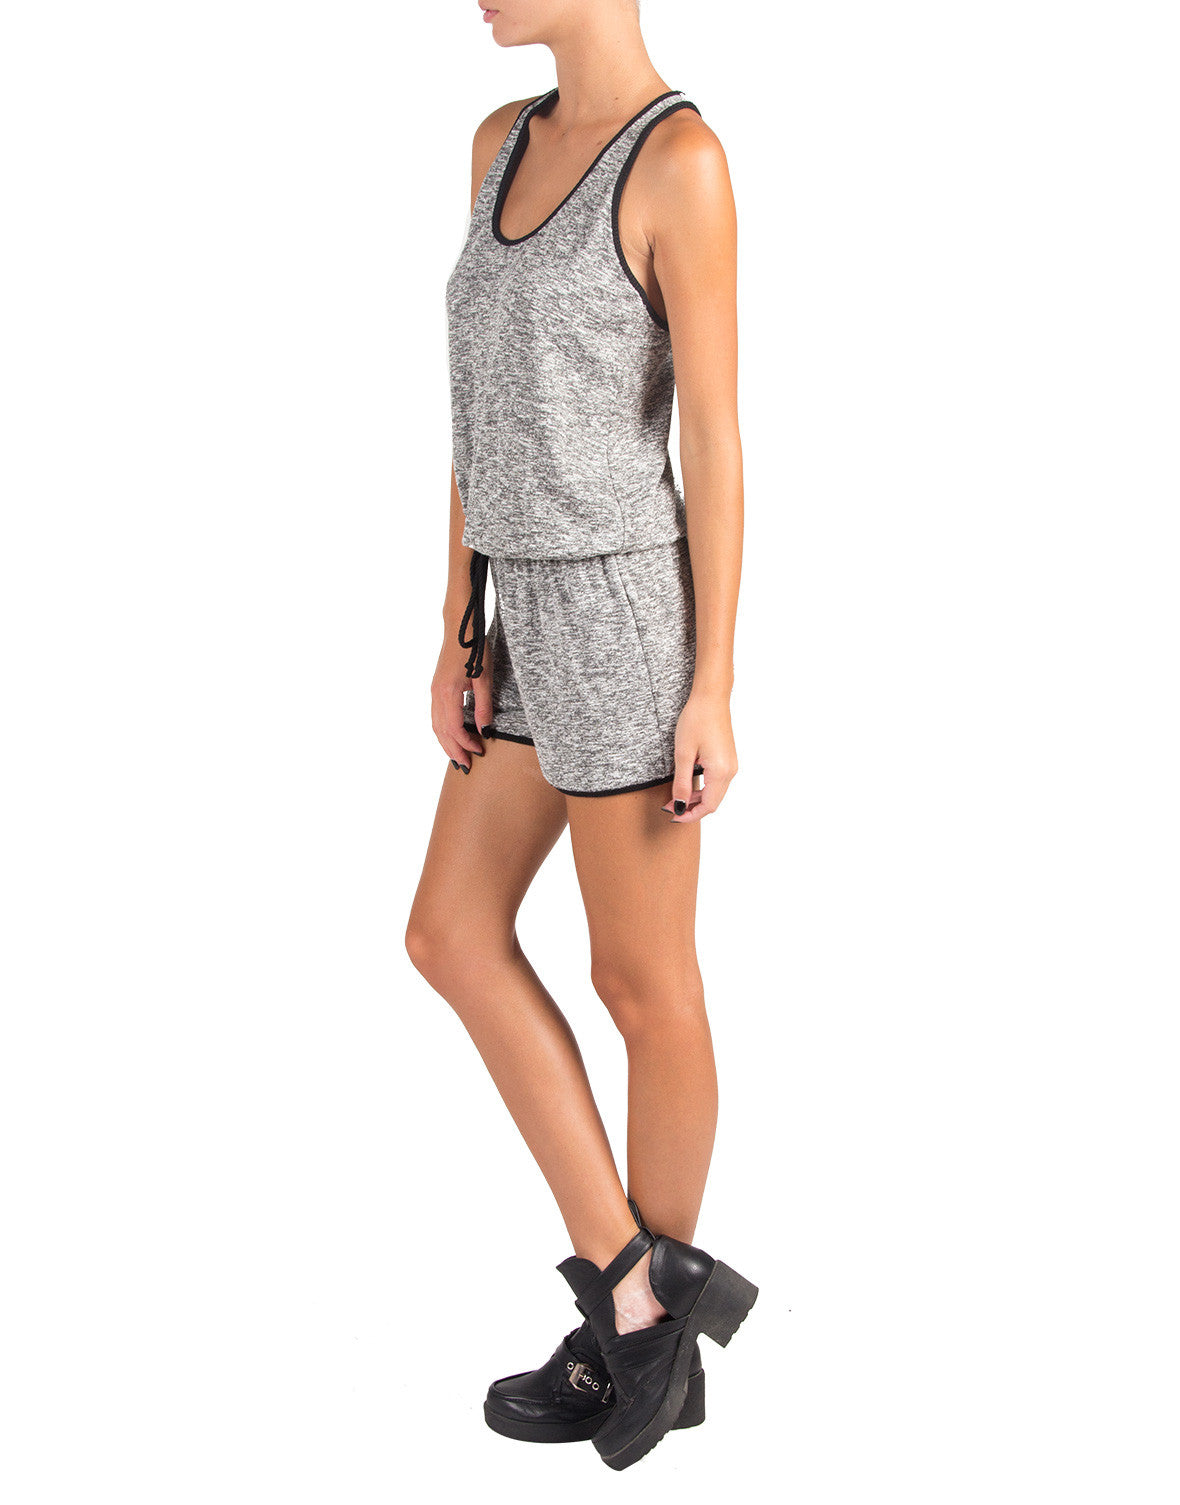 Heathered Solid Trim Romper - Large - 2020AVE